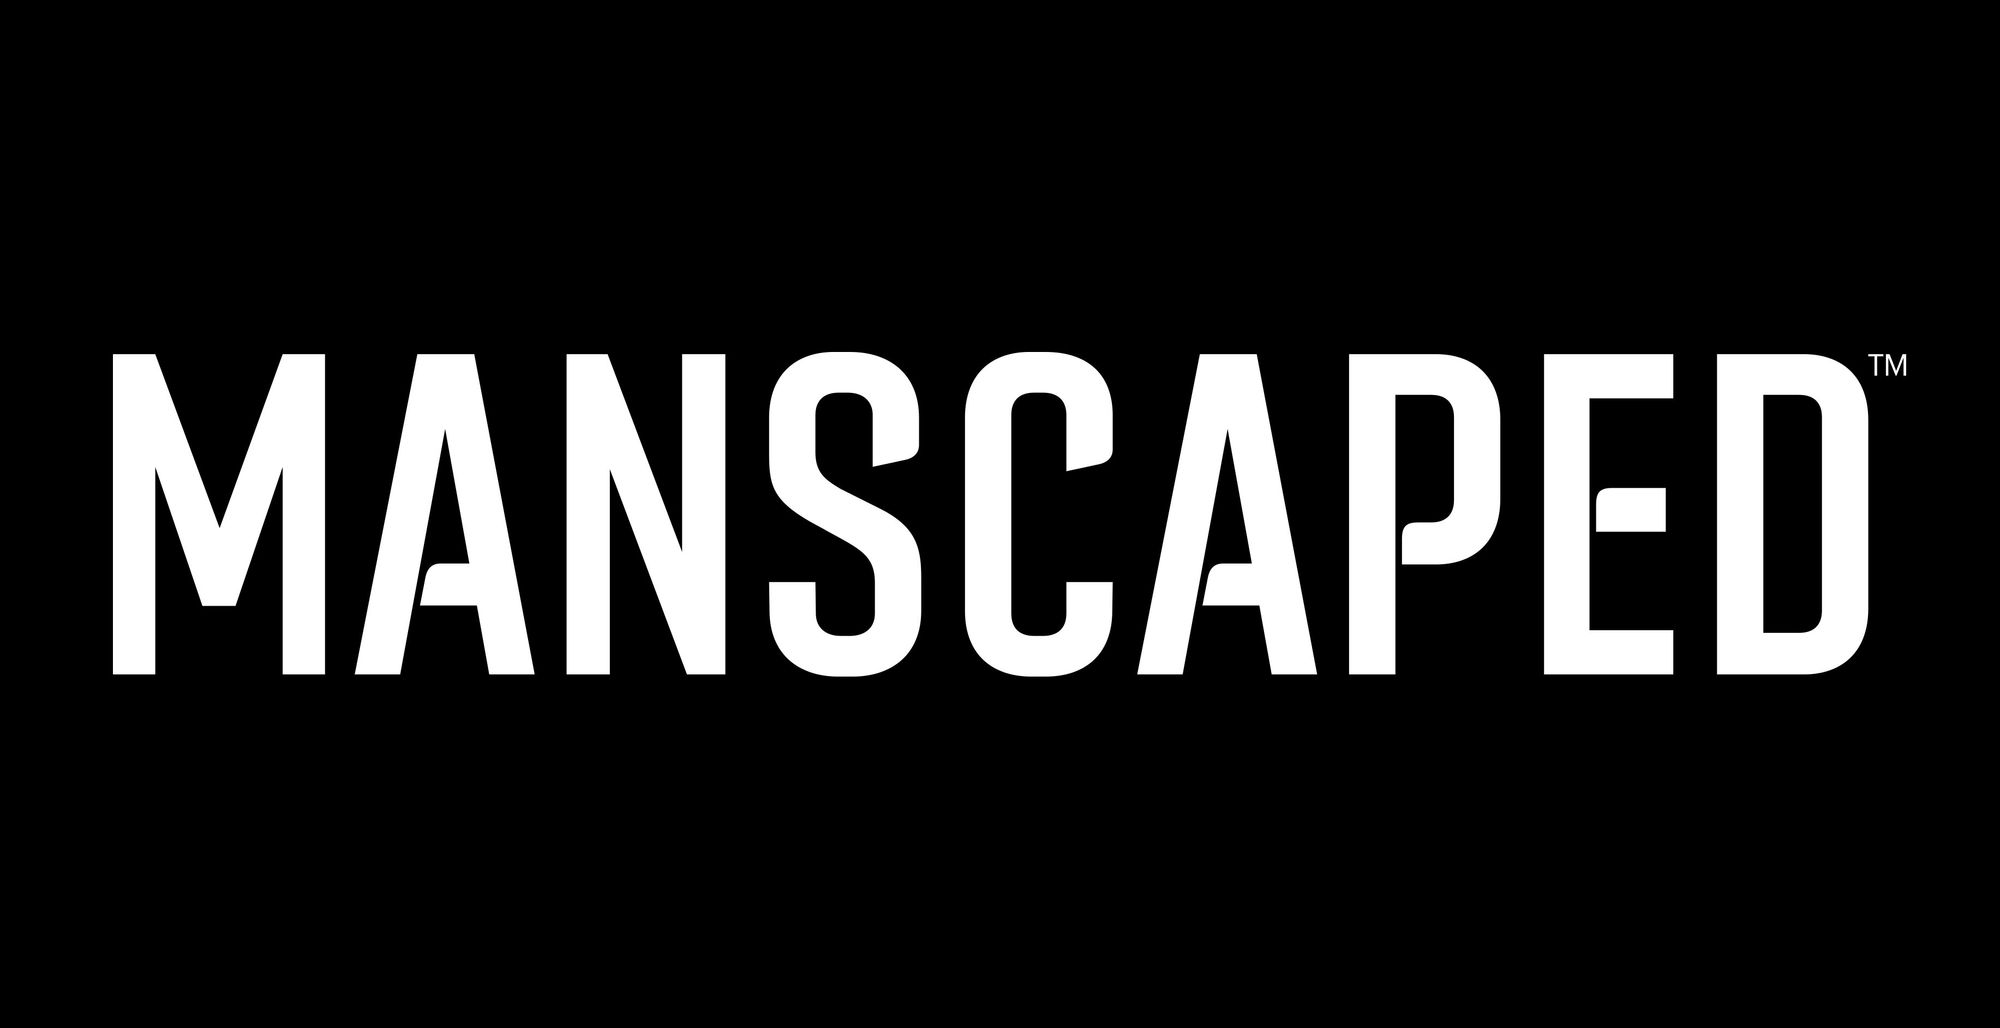 What Ingredients Are In The Manscaped™ Crop Cleanser®?